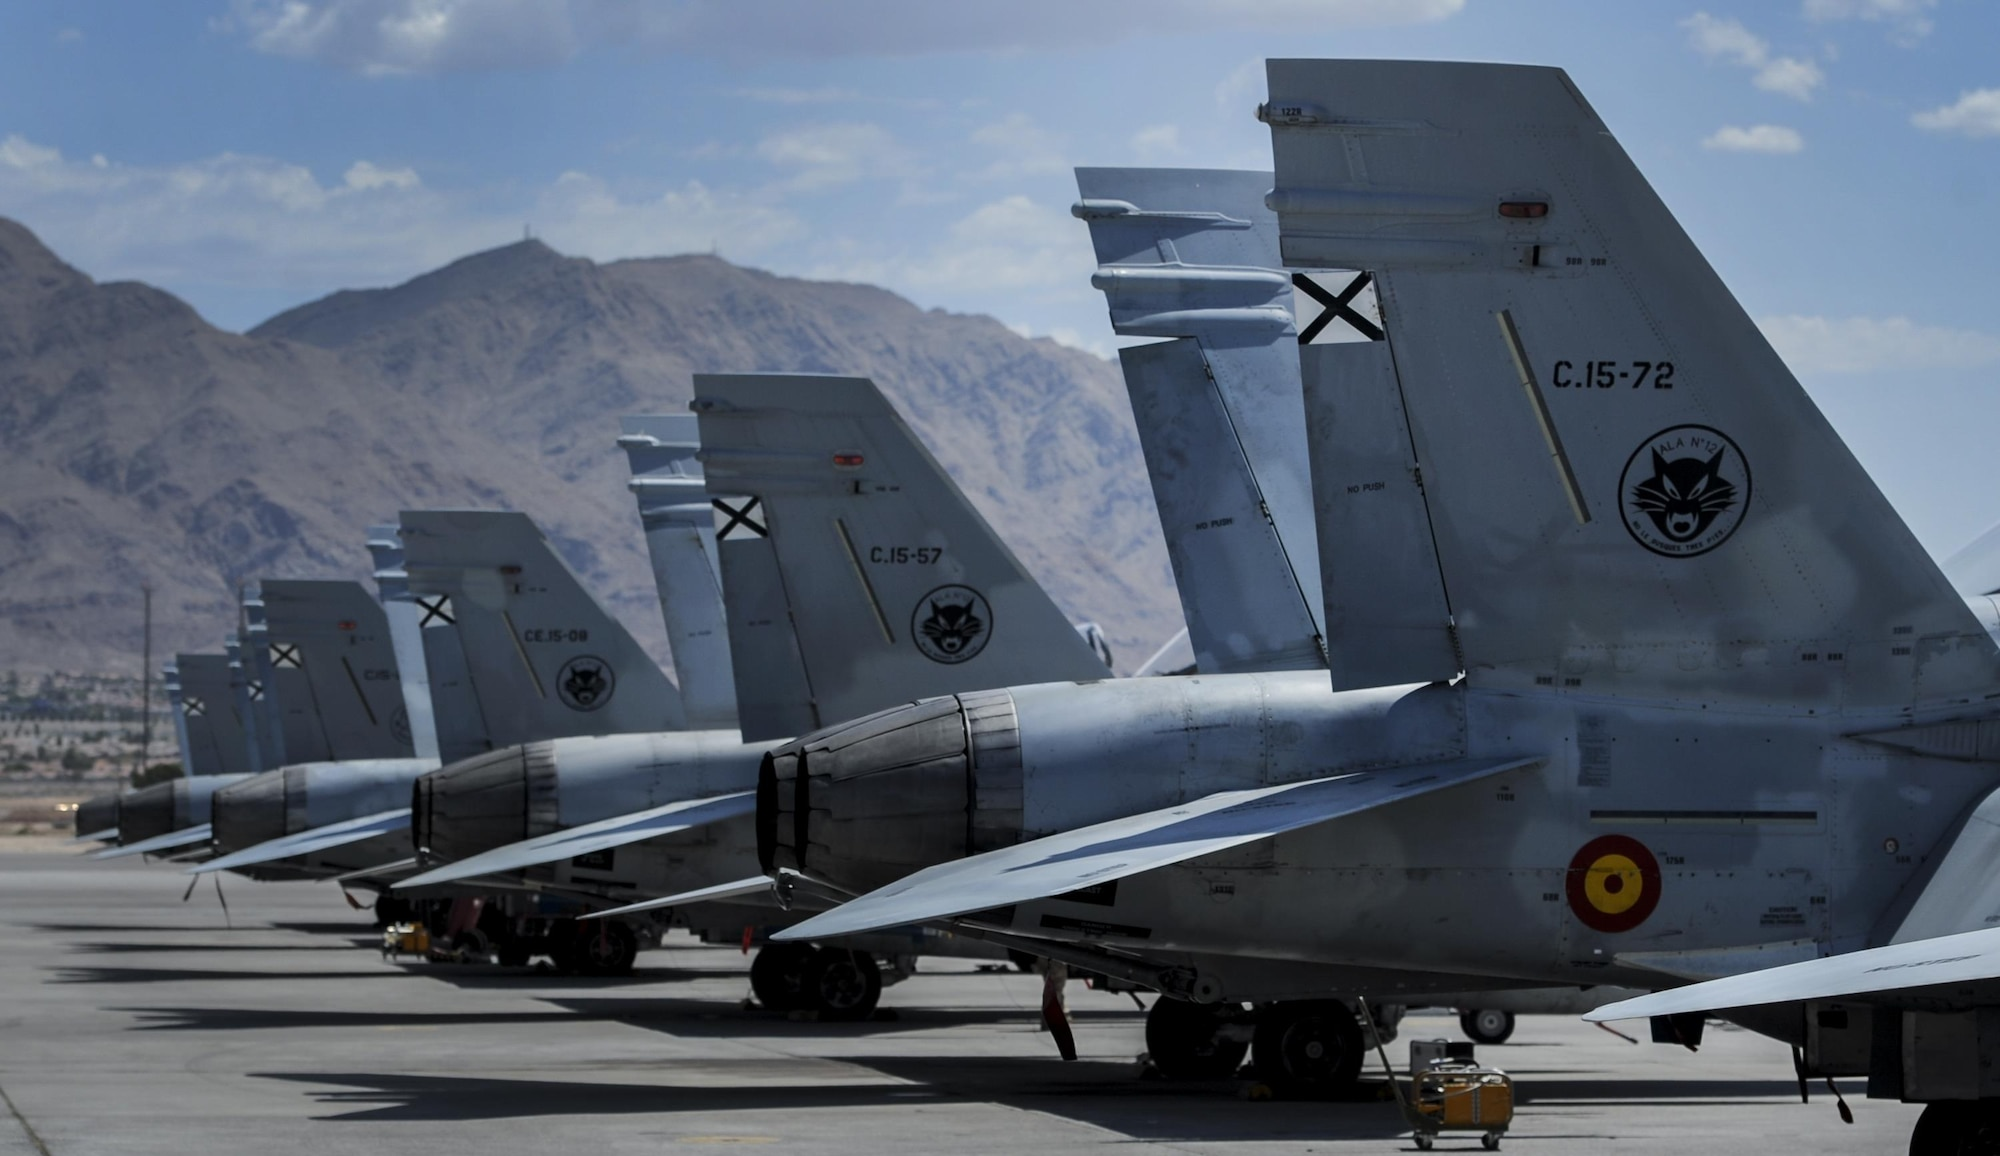 Spanish air force EF-18Ms sit on the runway at Nellis Air Force Base, Nev. during Red Flag 16-4, Aug. 17, 2016. Red Flag was established in 1975 as one of the initiatives directed by General Robert J. Dixon, then commander of Tactical Air Command, to better prepare our forces for combat. (U.S. Air Force photo by Airman 1st Class Kevin Tanenbaum/Released)